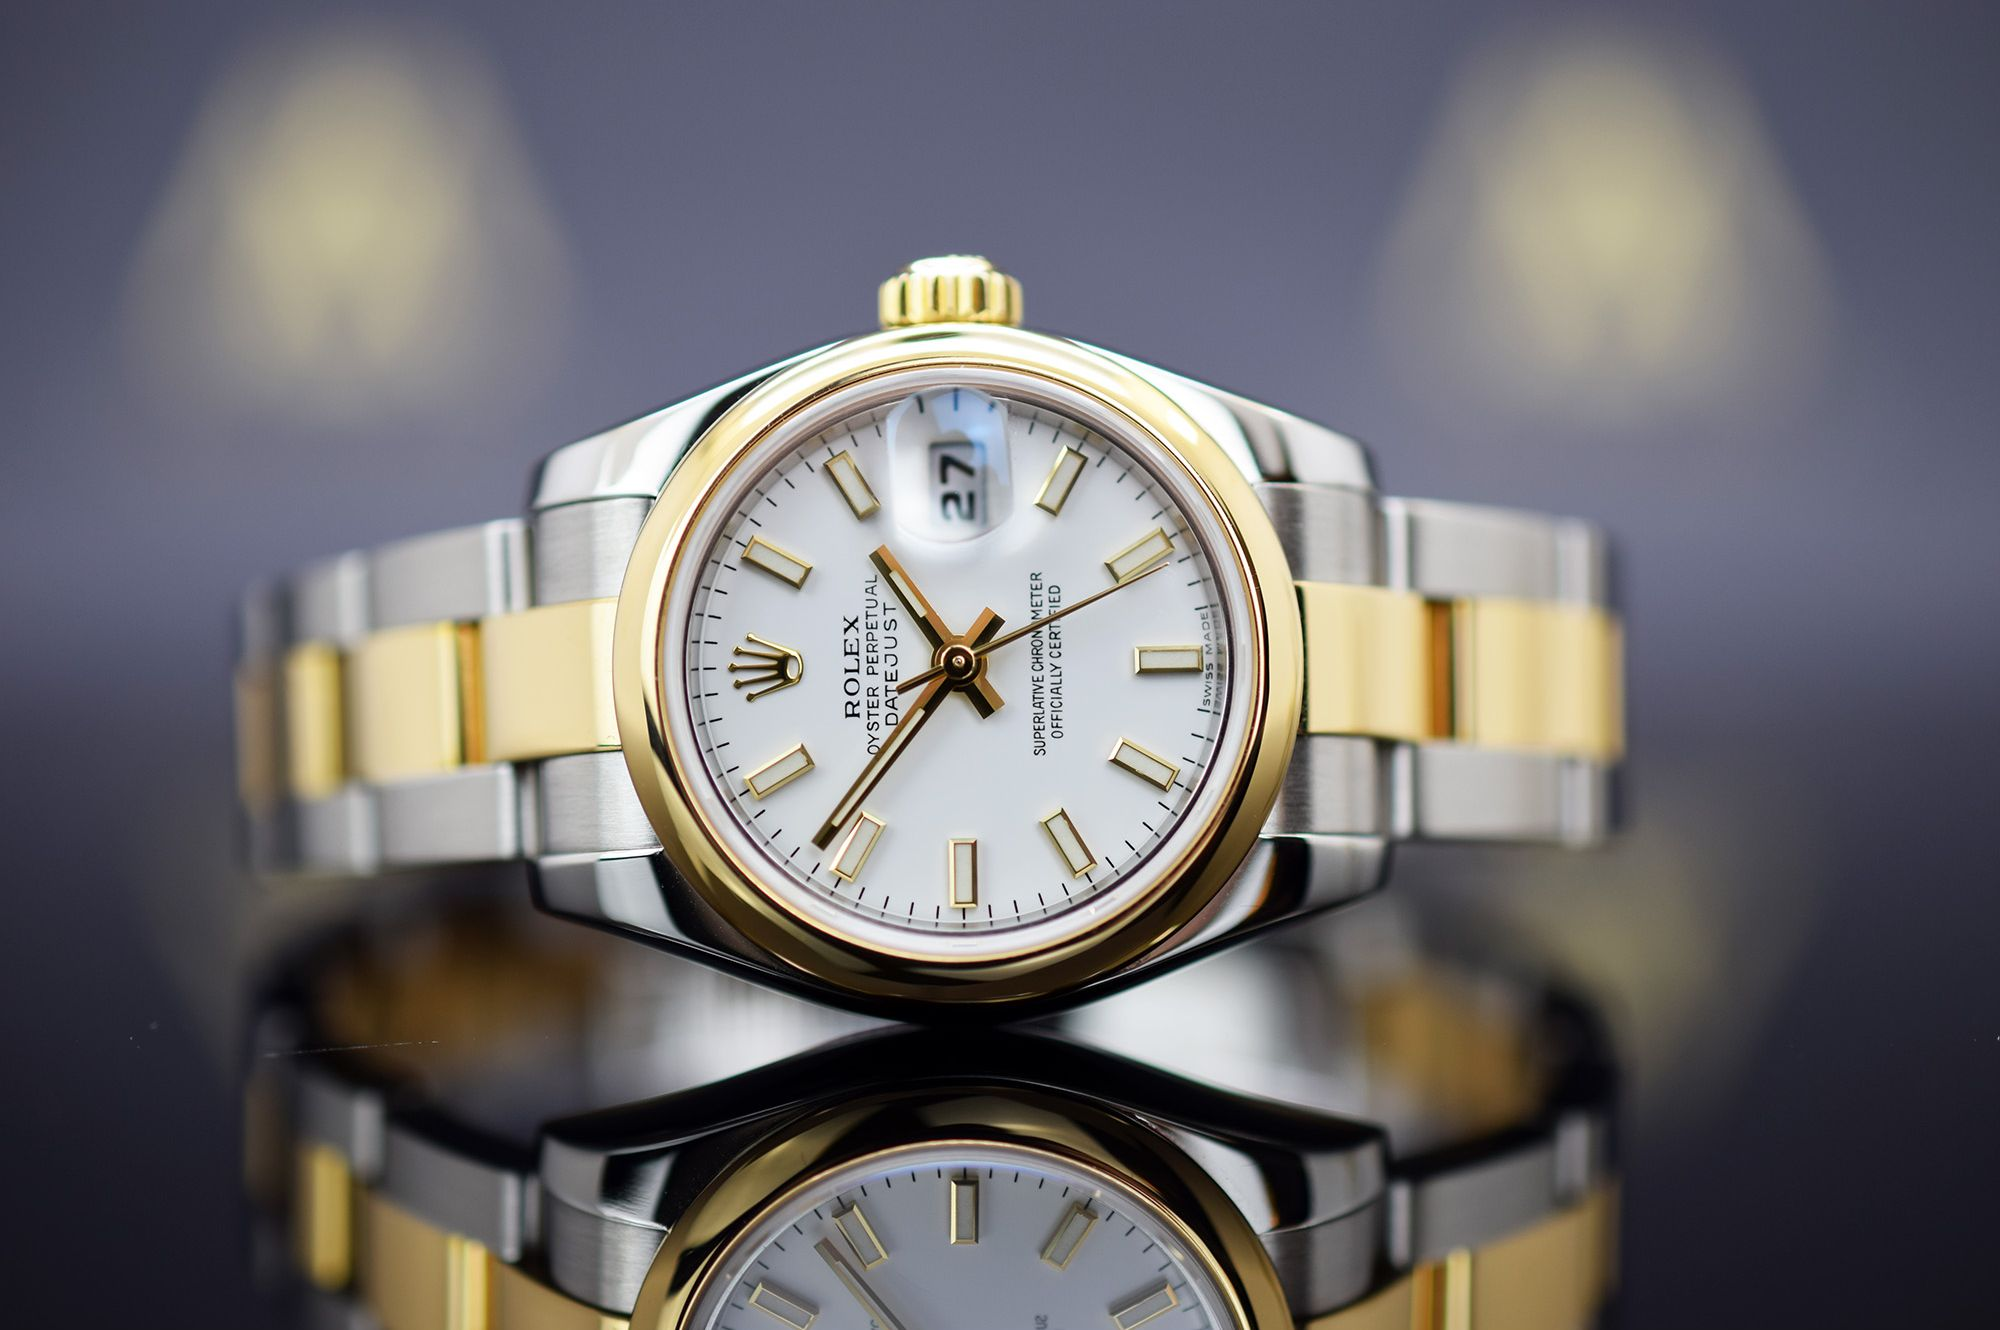 Rolex Oyster Perpetual Datejust - Aus 2006